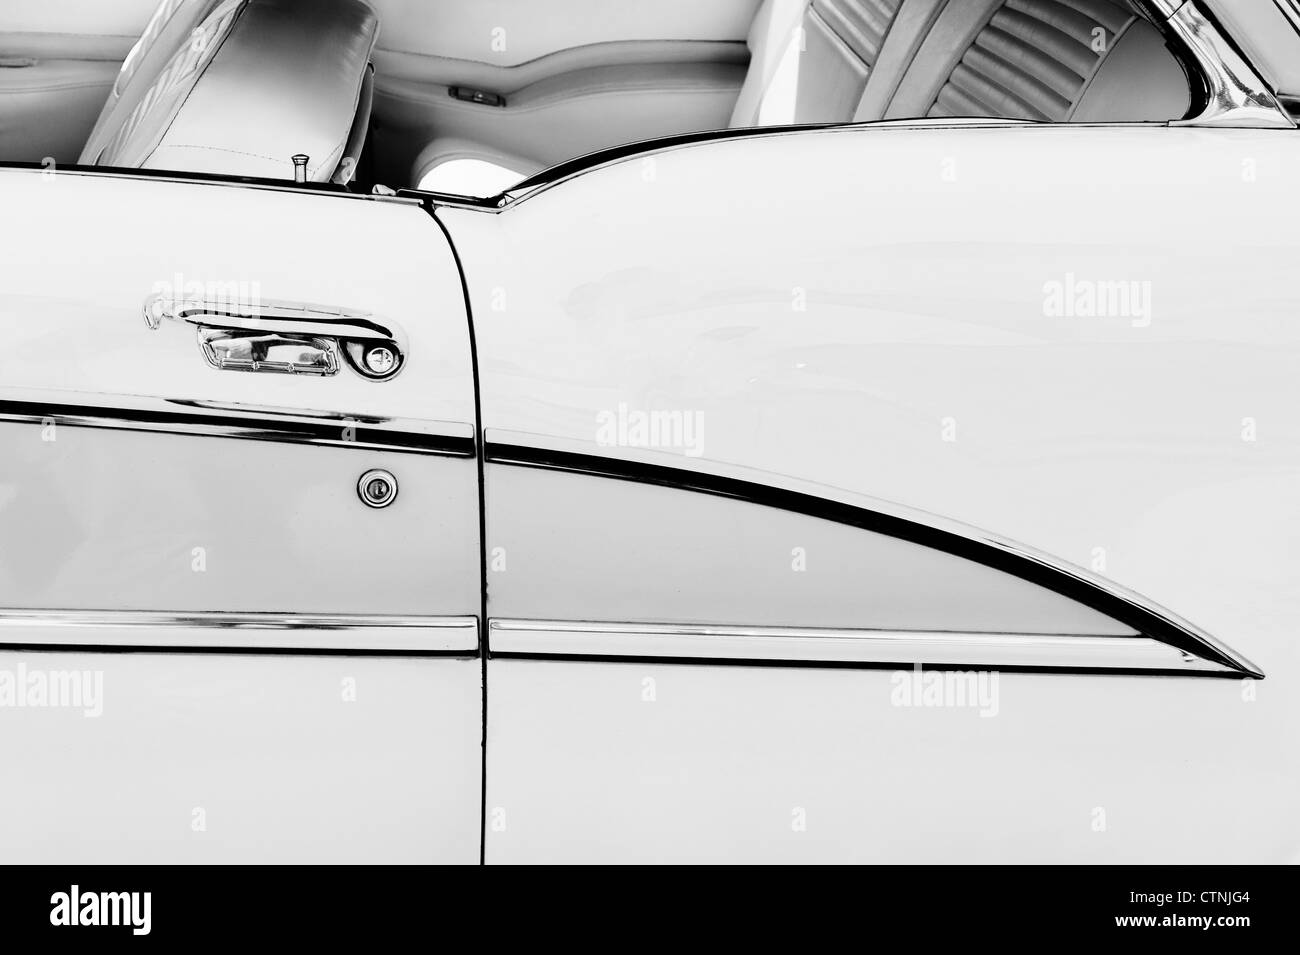 1955 Oldsmobile Holiday 98 coupe detail. Classic American car. Monochrome - Stock Image